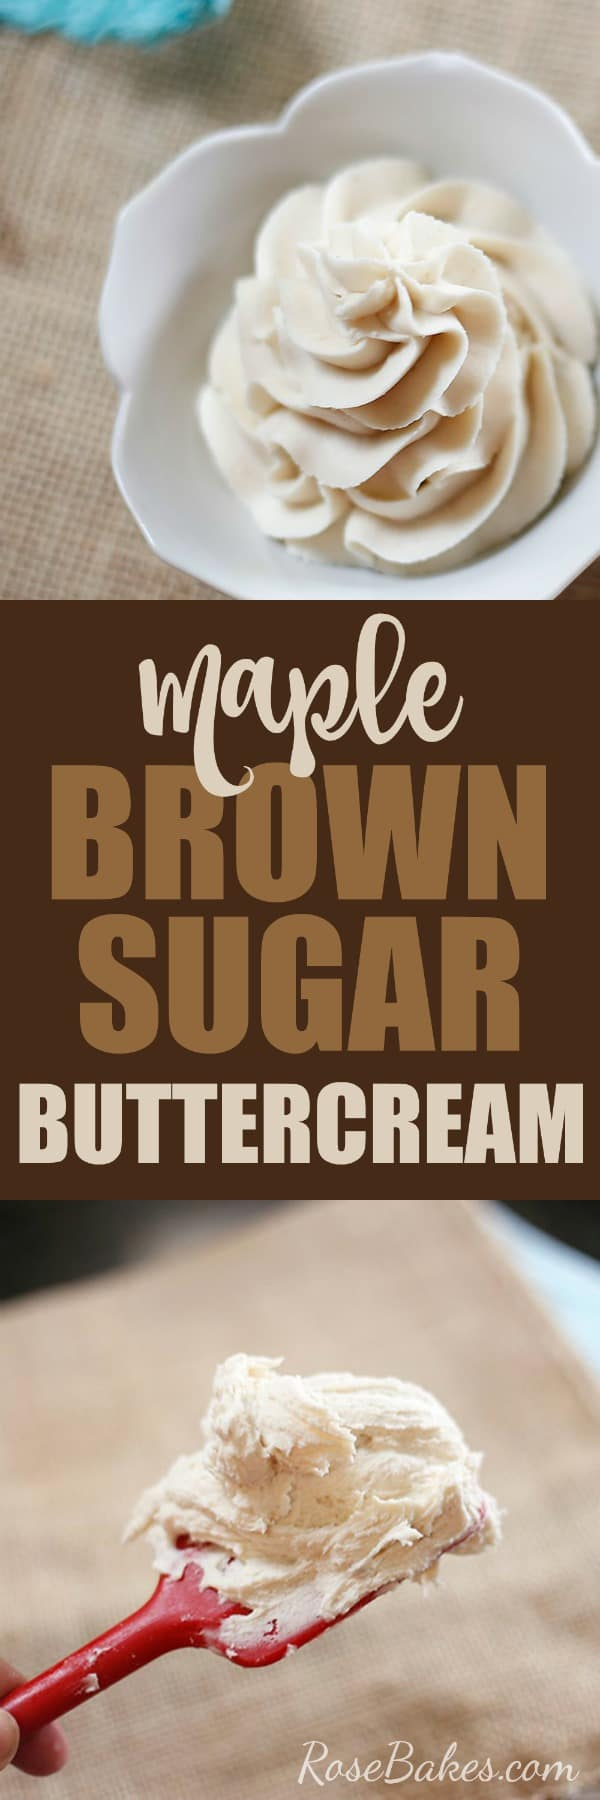 """Top image is a white bowl with a piped swirl of maple brown sugar buttercream. Bottom image is a red spatula with maple brown sugar buttercream on it. In between the images is the text, """"maple brown sugar buttercream"""""""